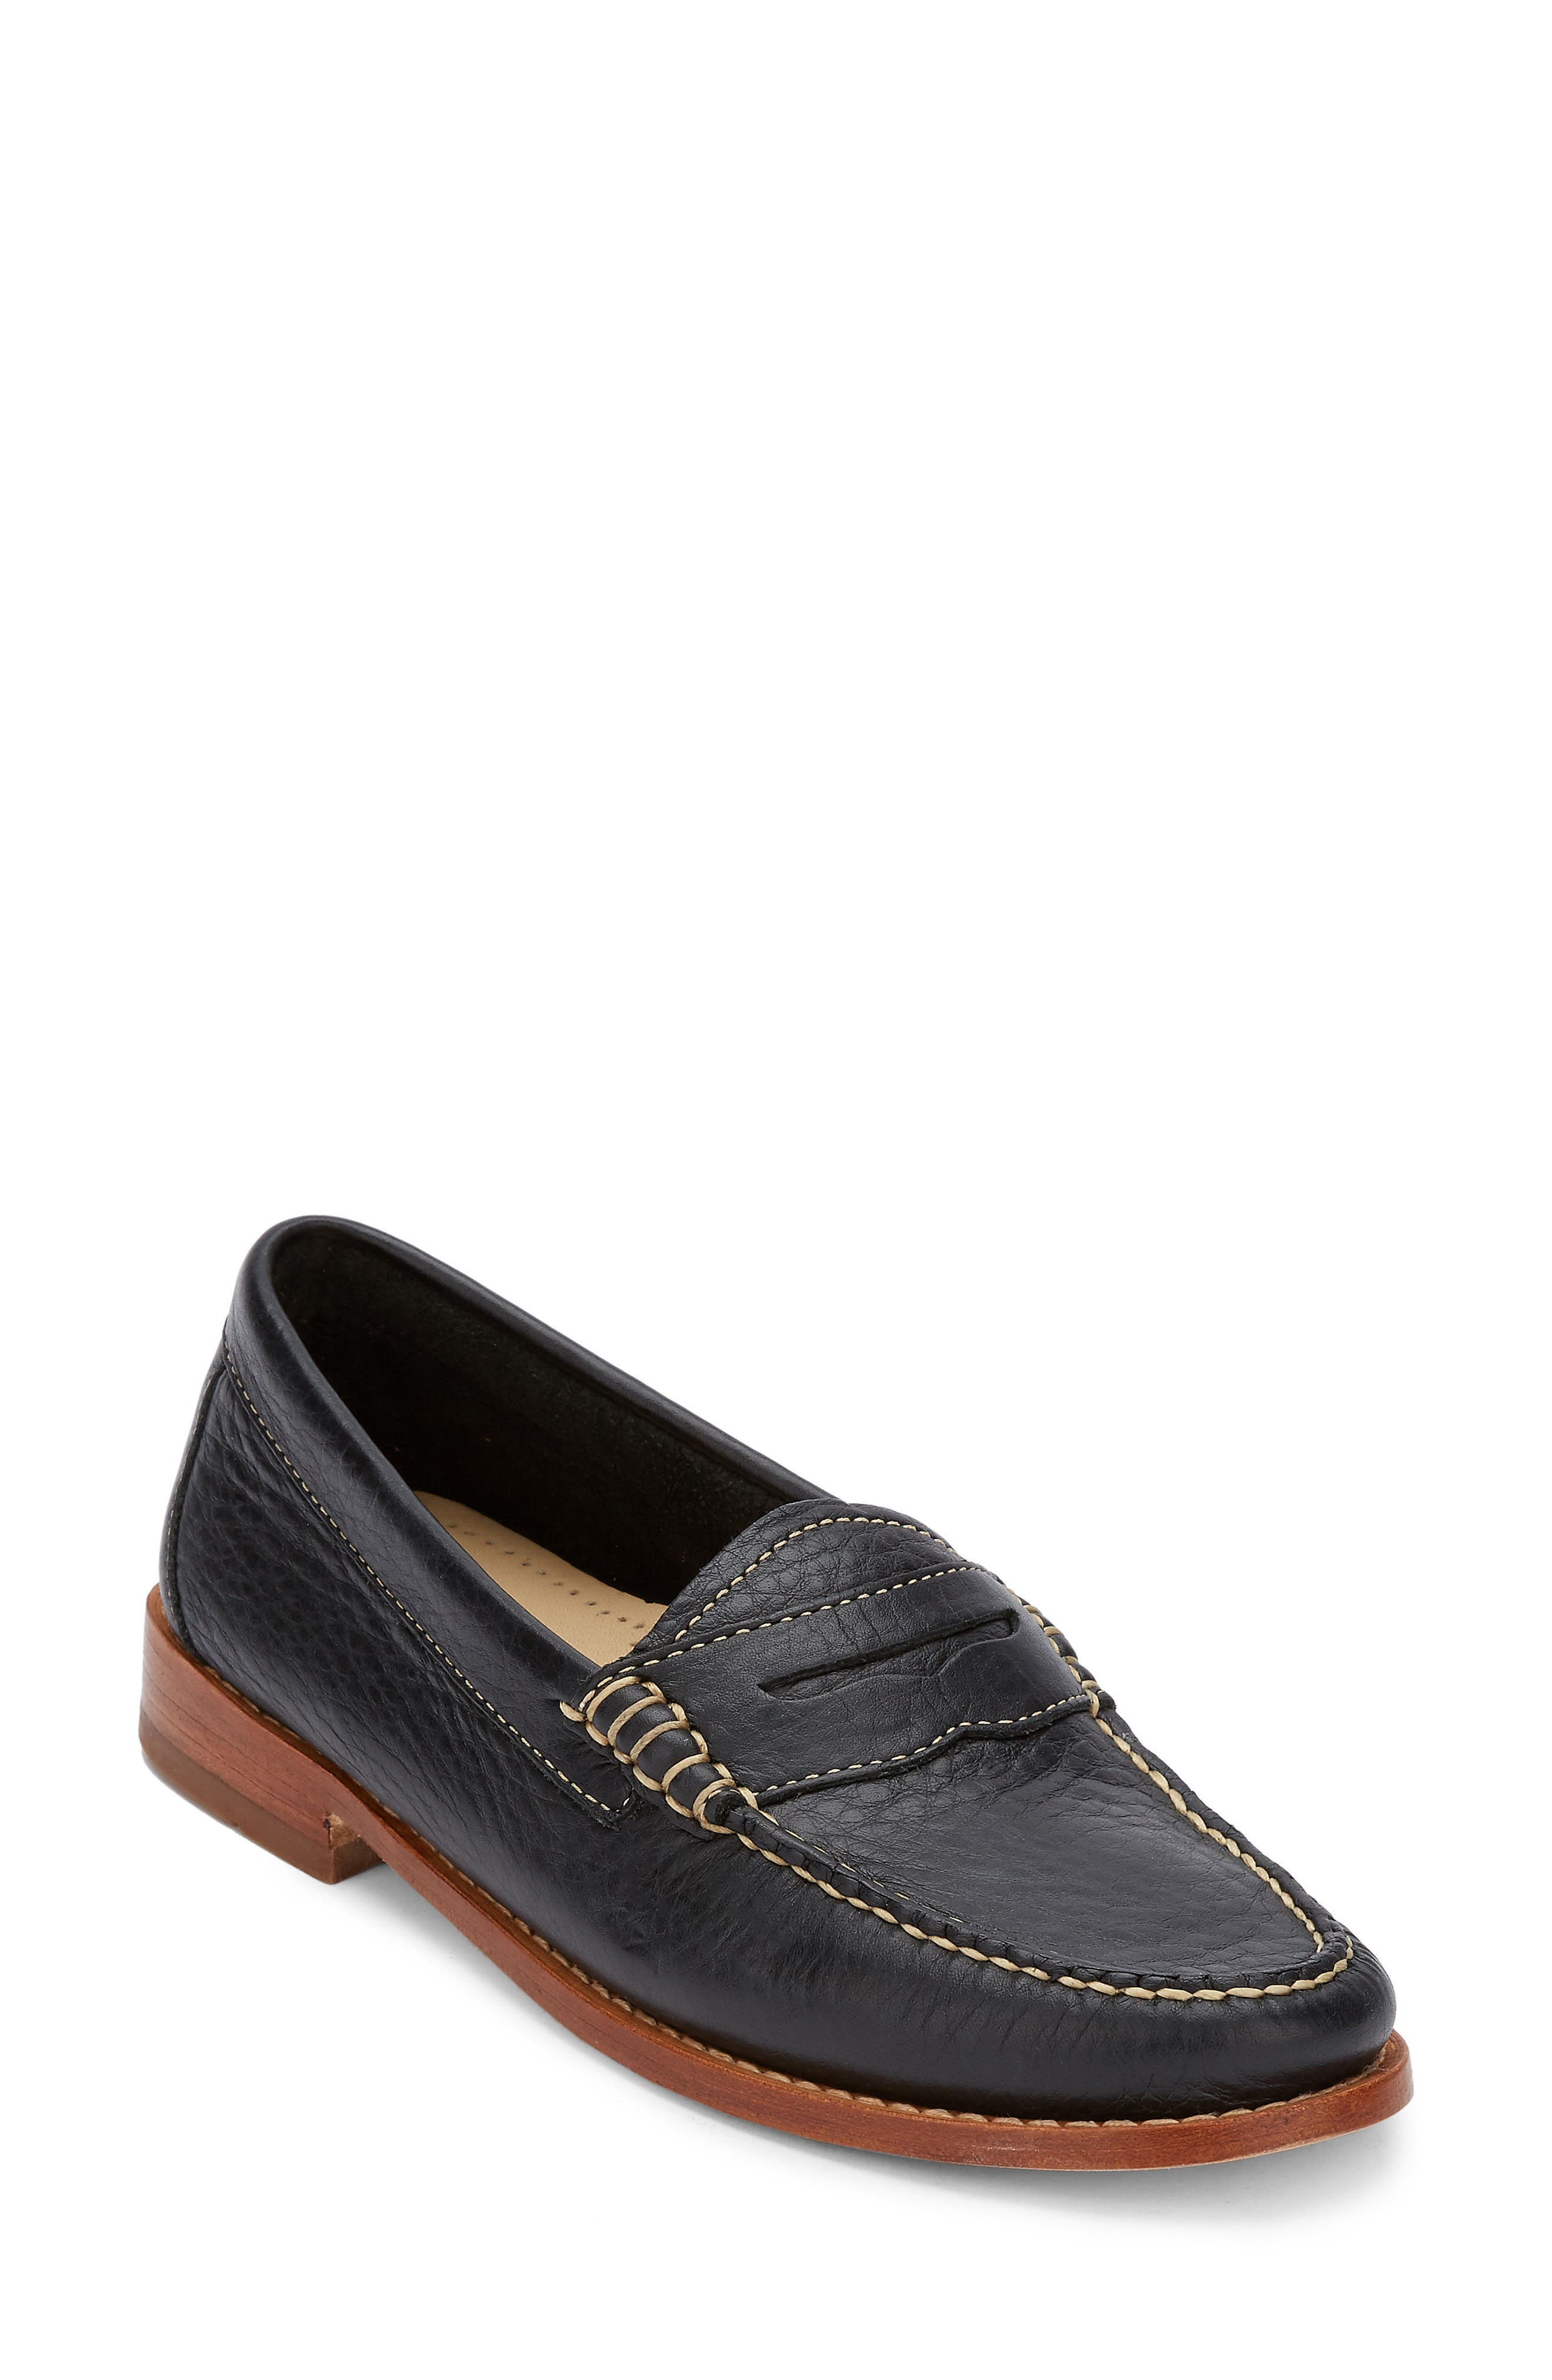 'Whitney' Loafer,                             Main thumbnail 23, color,